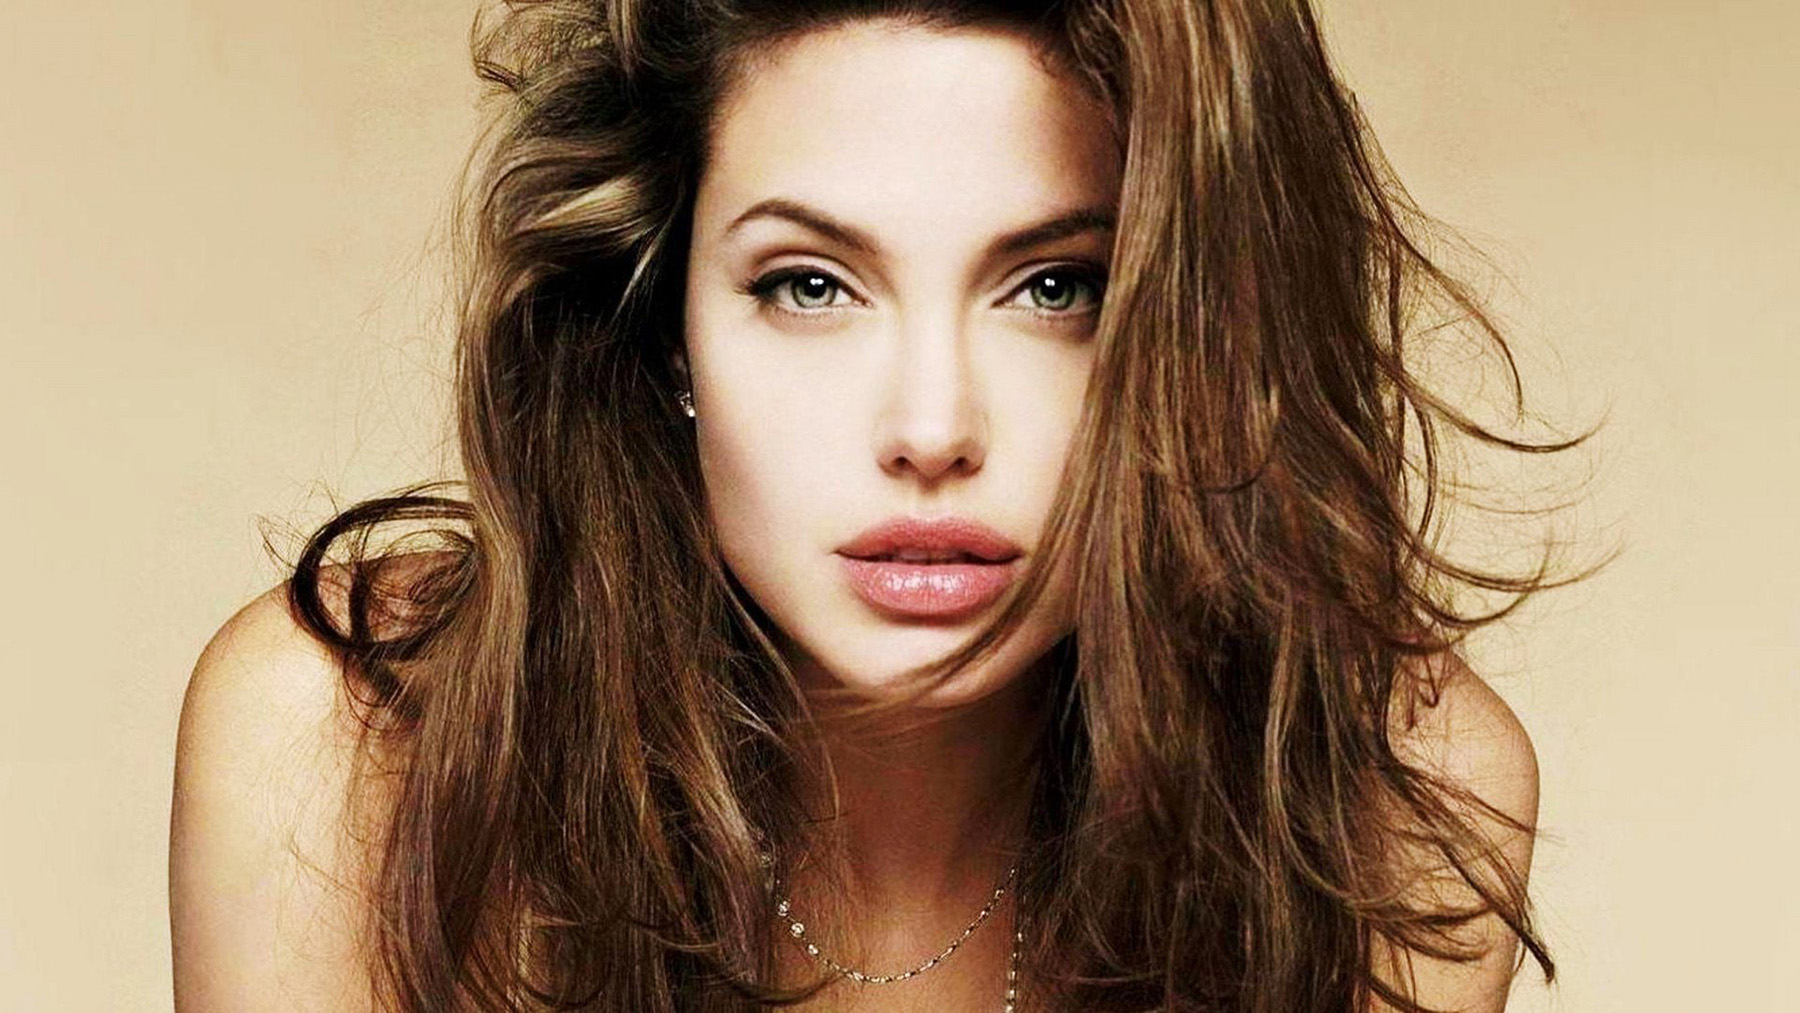 Angelina Jolie Biography: Movies, News, Photos, Tattoos ...